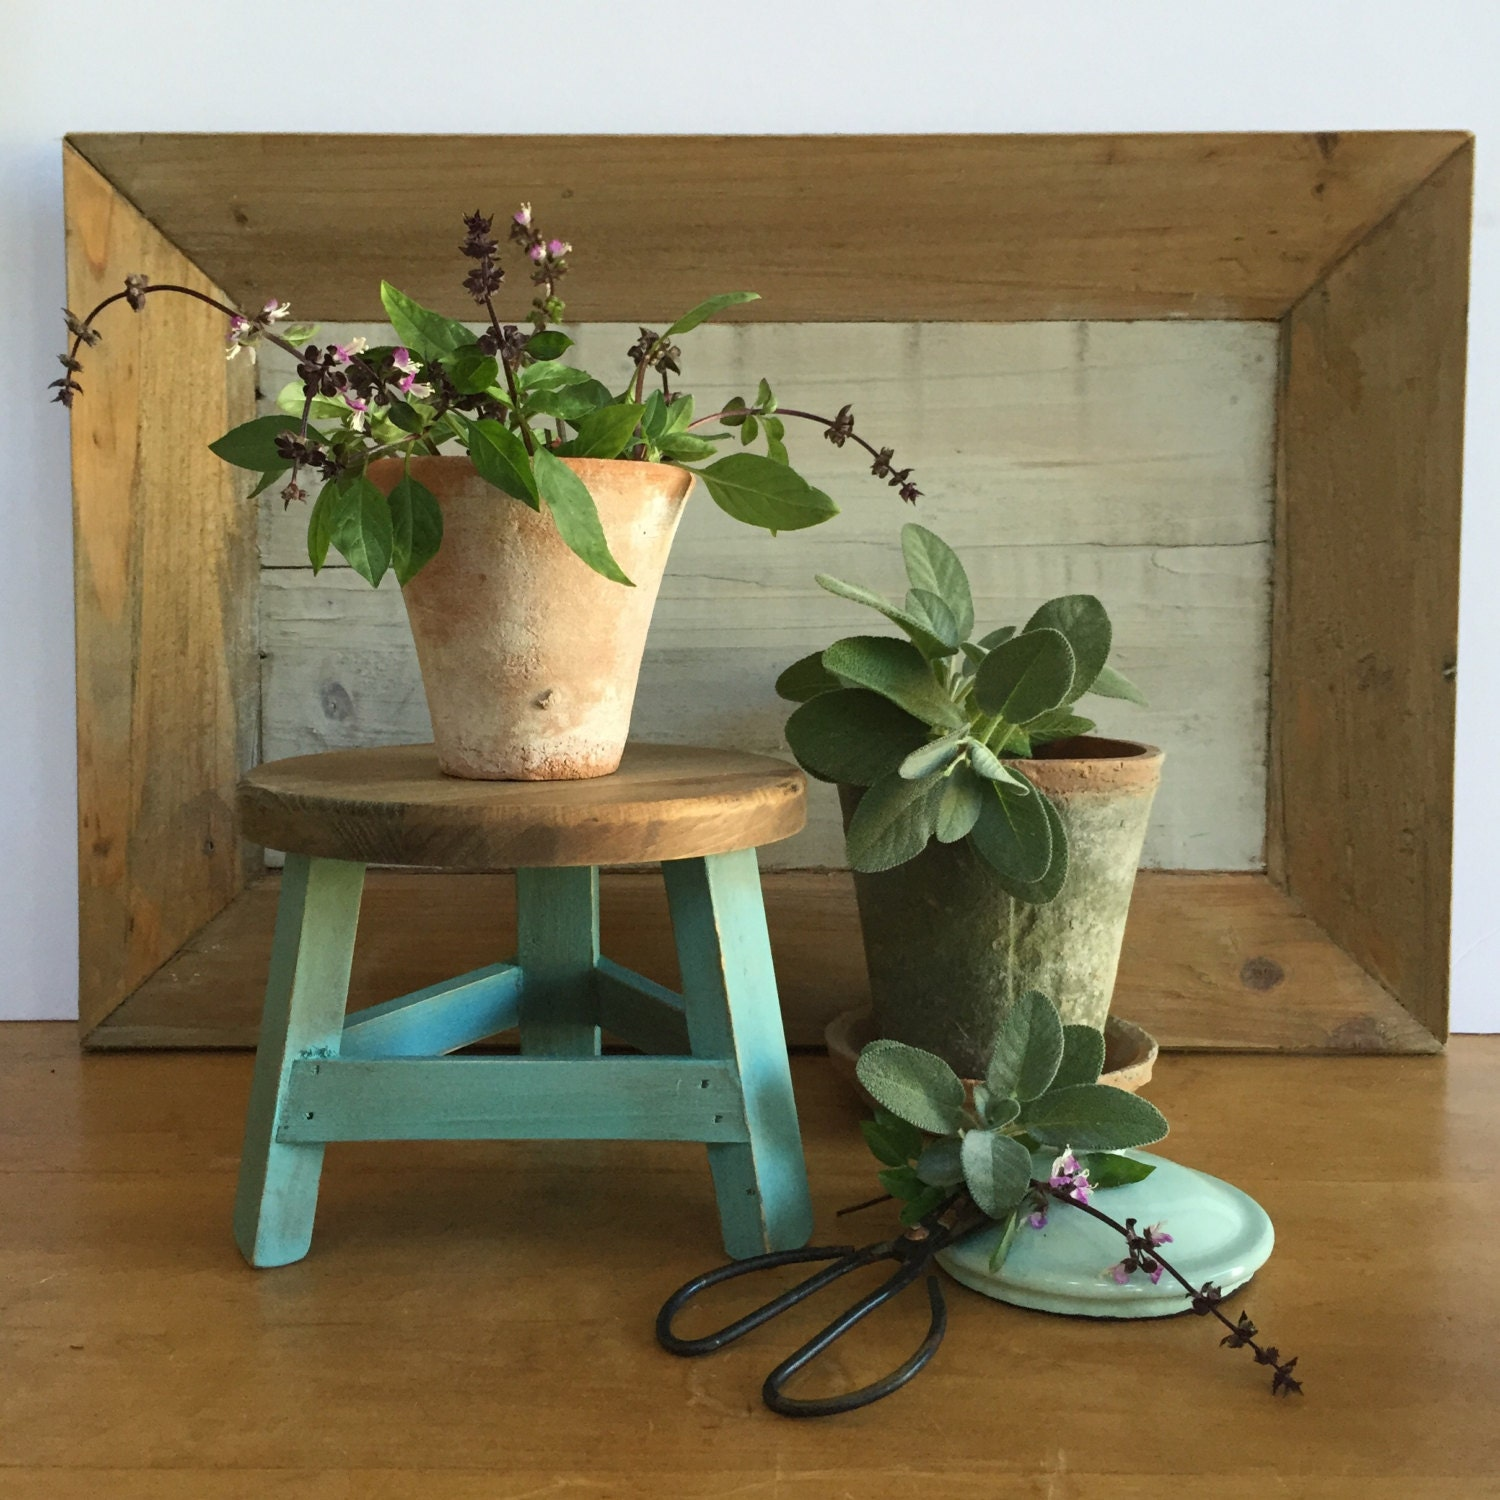 Farmhouse Decorative Step Stool Cottage Beach House Rustic. I Love You To The Moon And Back Nursery Decor. Decorative Floor Tiles. Skull Decorations Wedding. Room Lighting Ideas. Decorative Water Cooler. Safe Rooms In Houses. In Room Air Conditioners. Decorations For Birthday Party